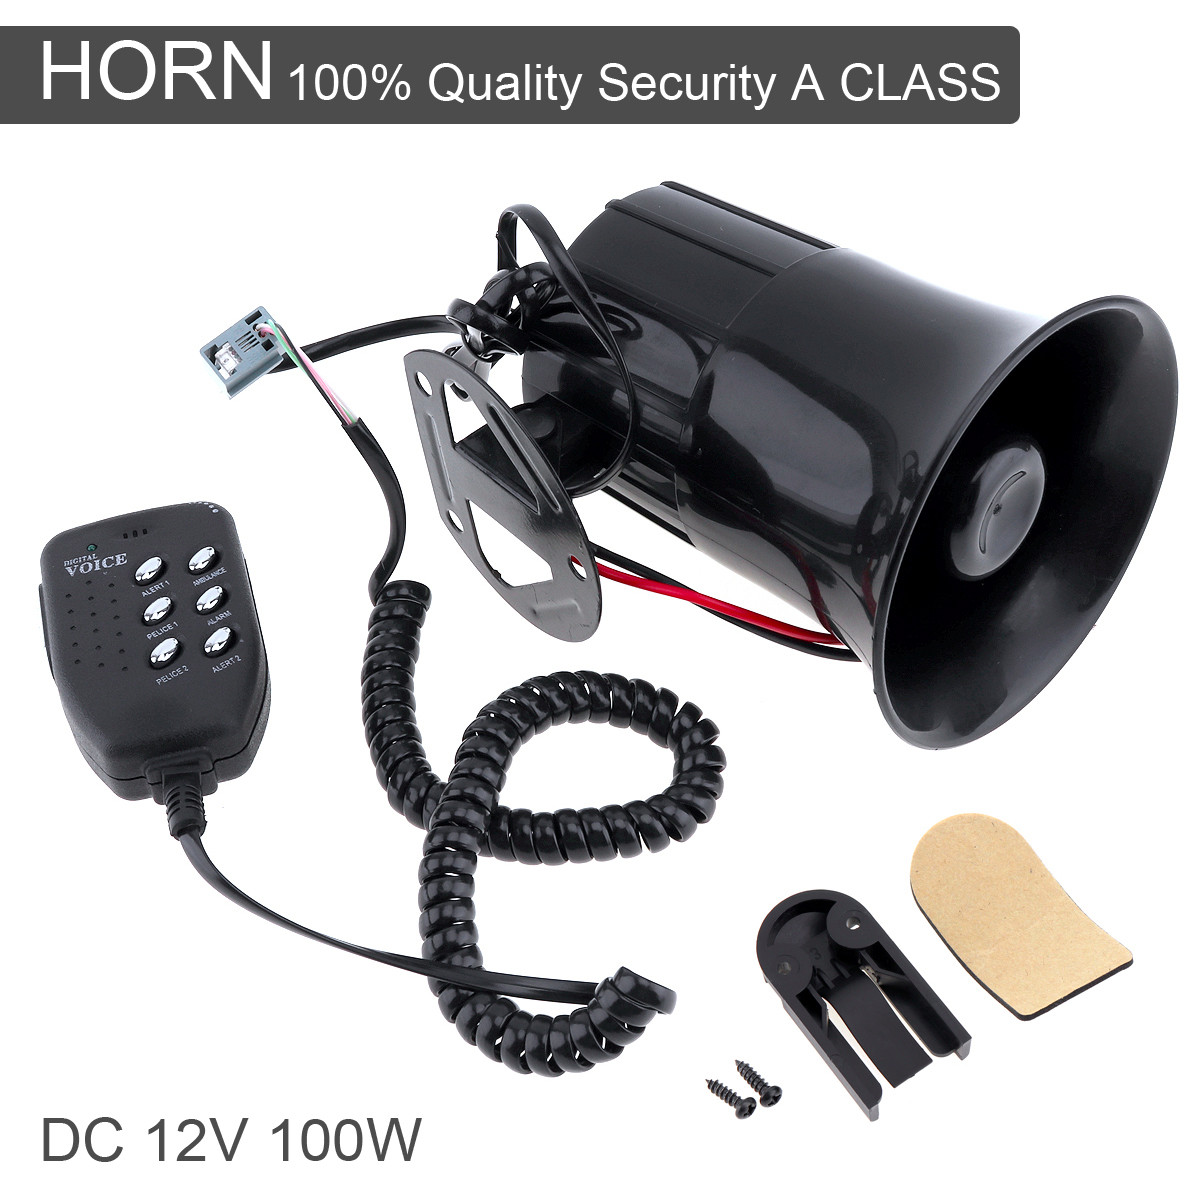 100W 12V 6 Sound Car Speaker Loud Alarm Siren Horn 105-115db with MIC Microphone for Auto Truck